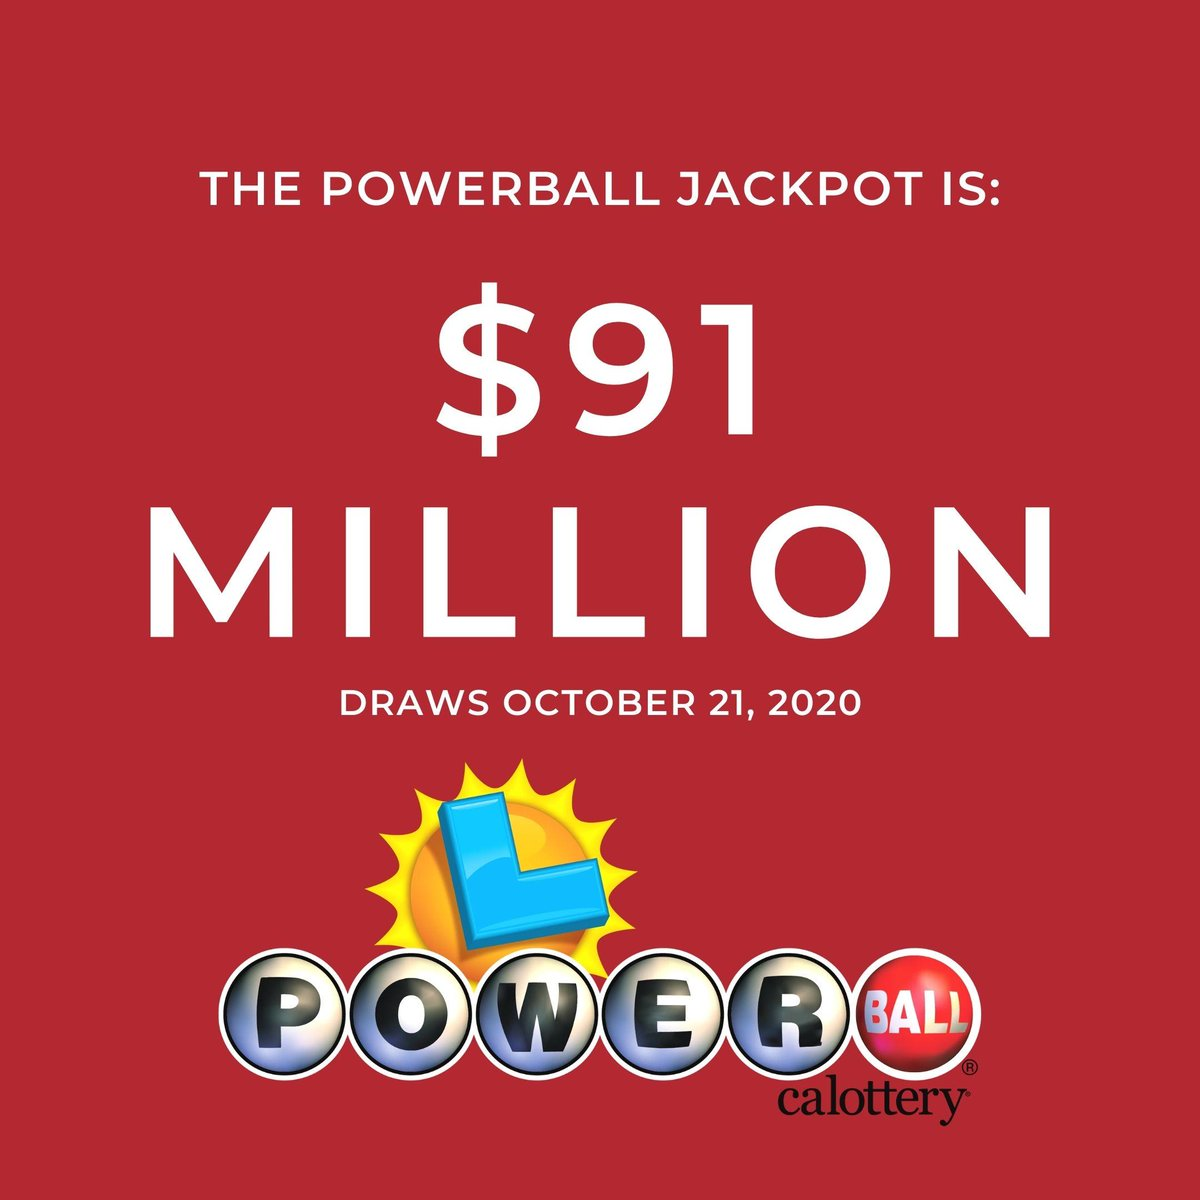 Have you heard? The #Powerball jackpot is now $91 MILLION. Do you have your ticket for Wednesday's draw? #calottery #JackpotAlert https://t.co/smXMsZ2nfD